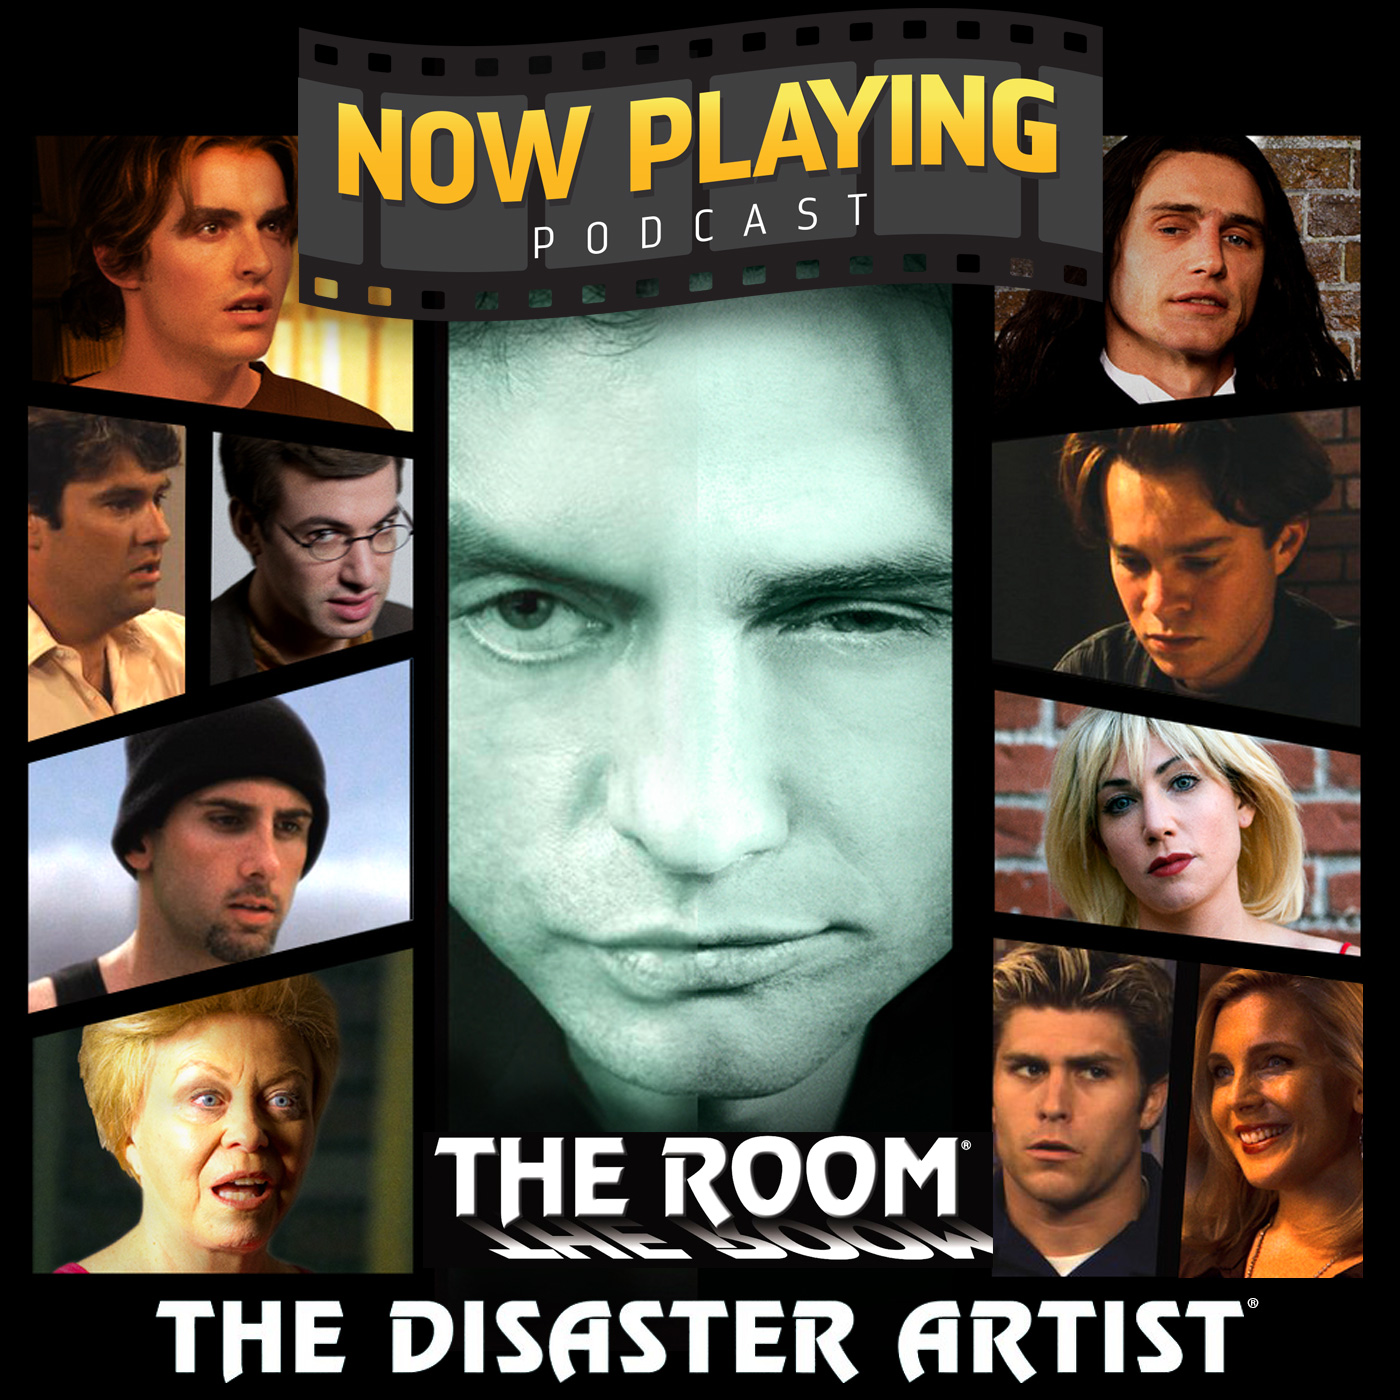 Room/Disaster Artist